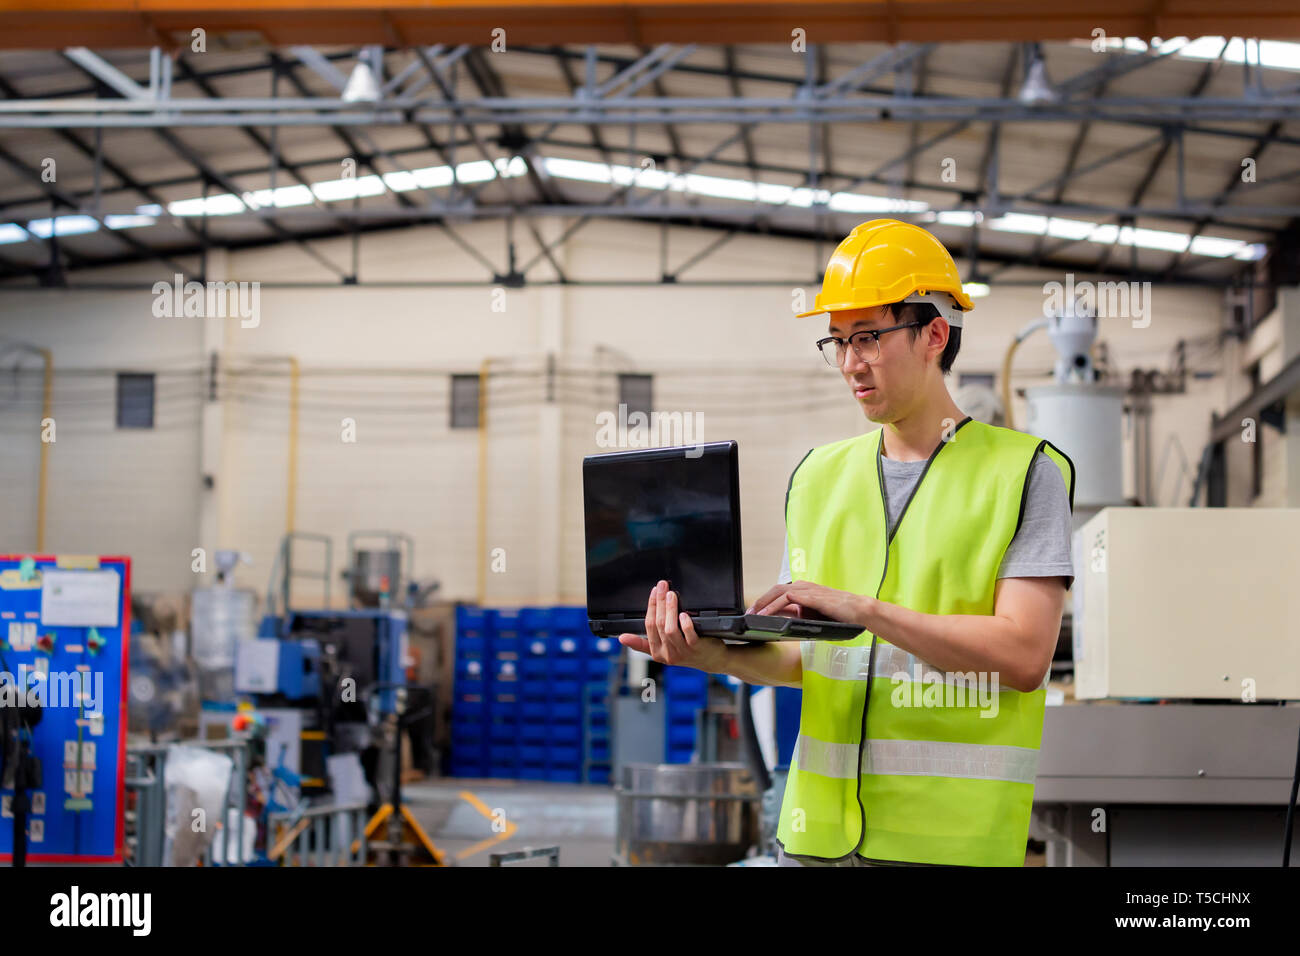 Asian male Industrial engineer in hardhat working with laptop in safety jacket at manufacturing factory. Processing plastic injection molding industry - Stock Image